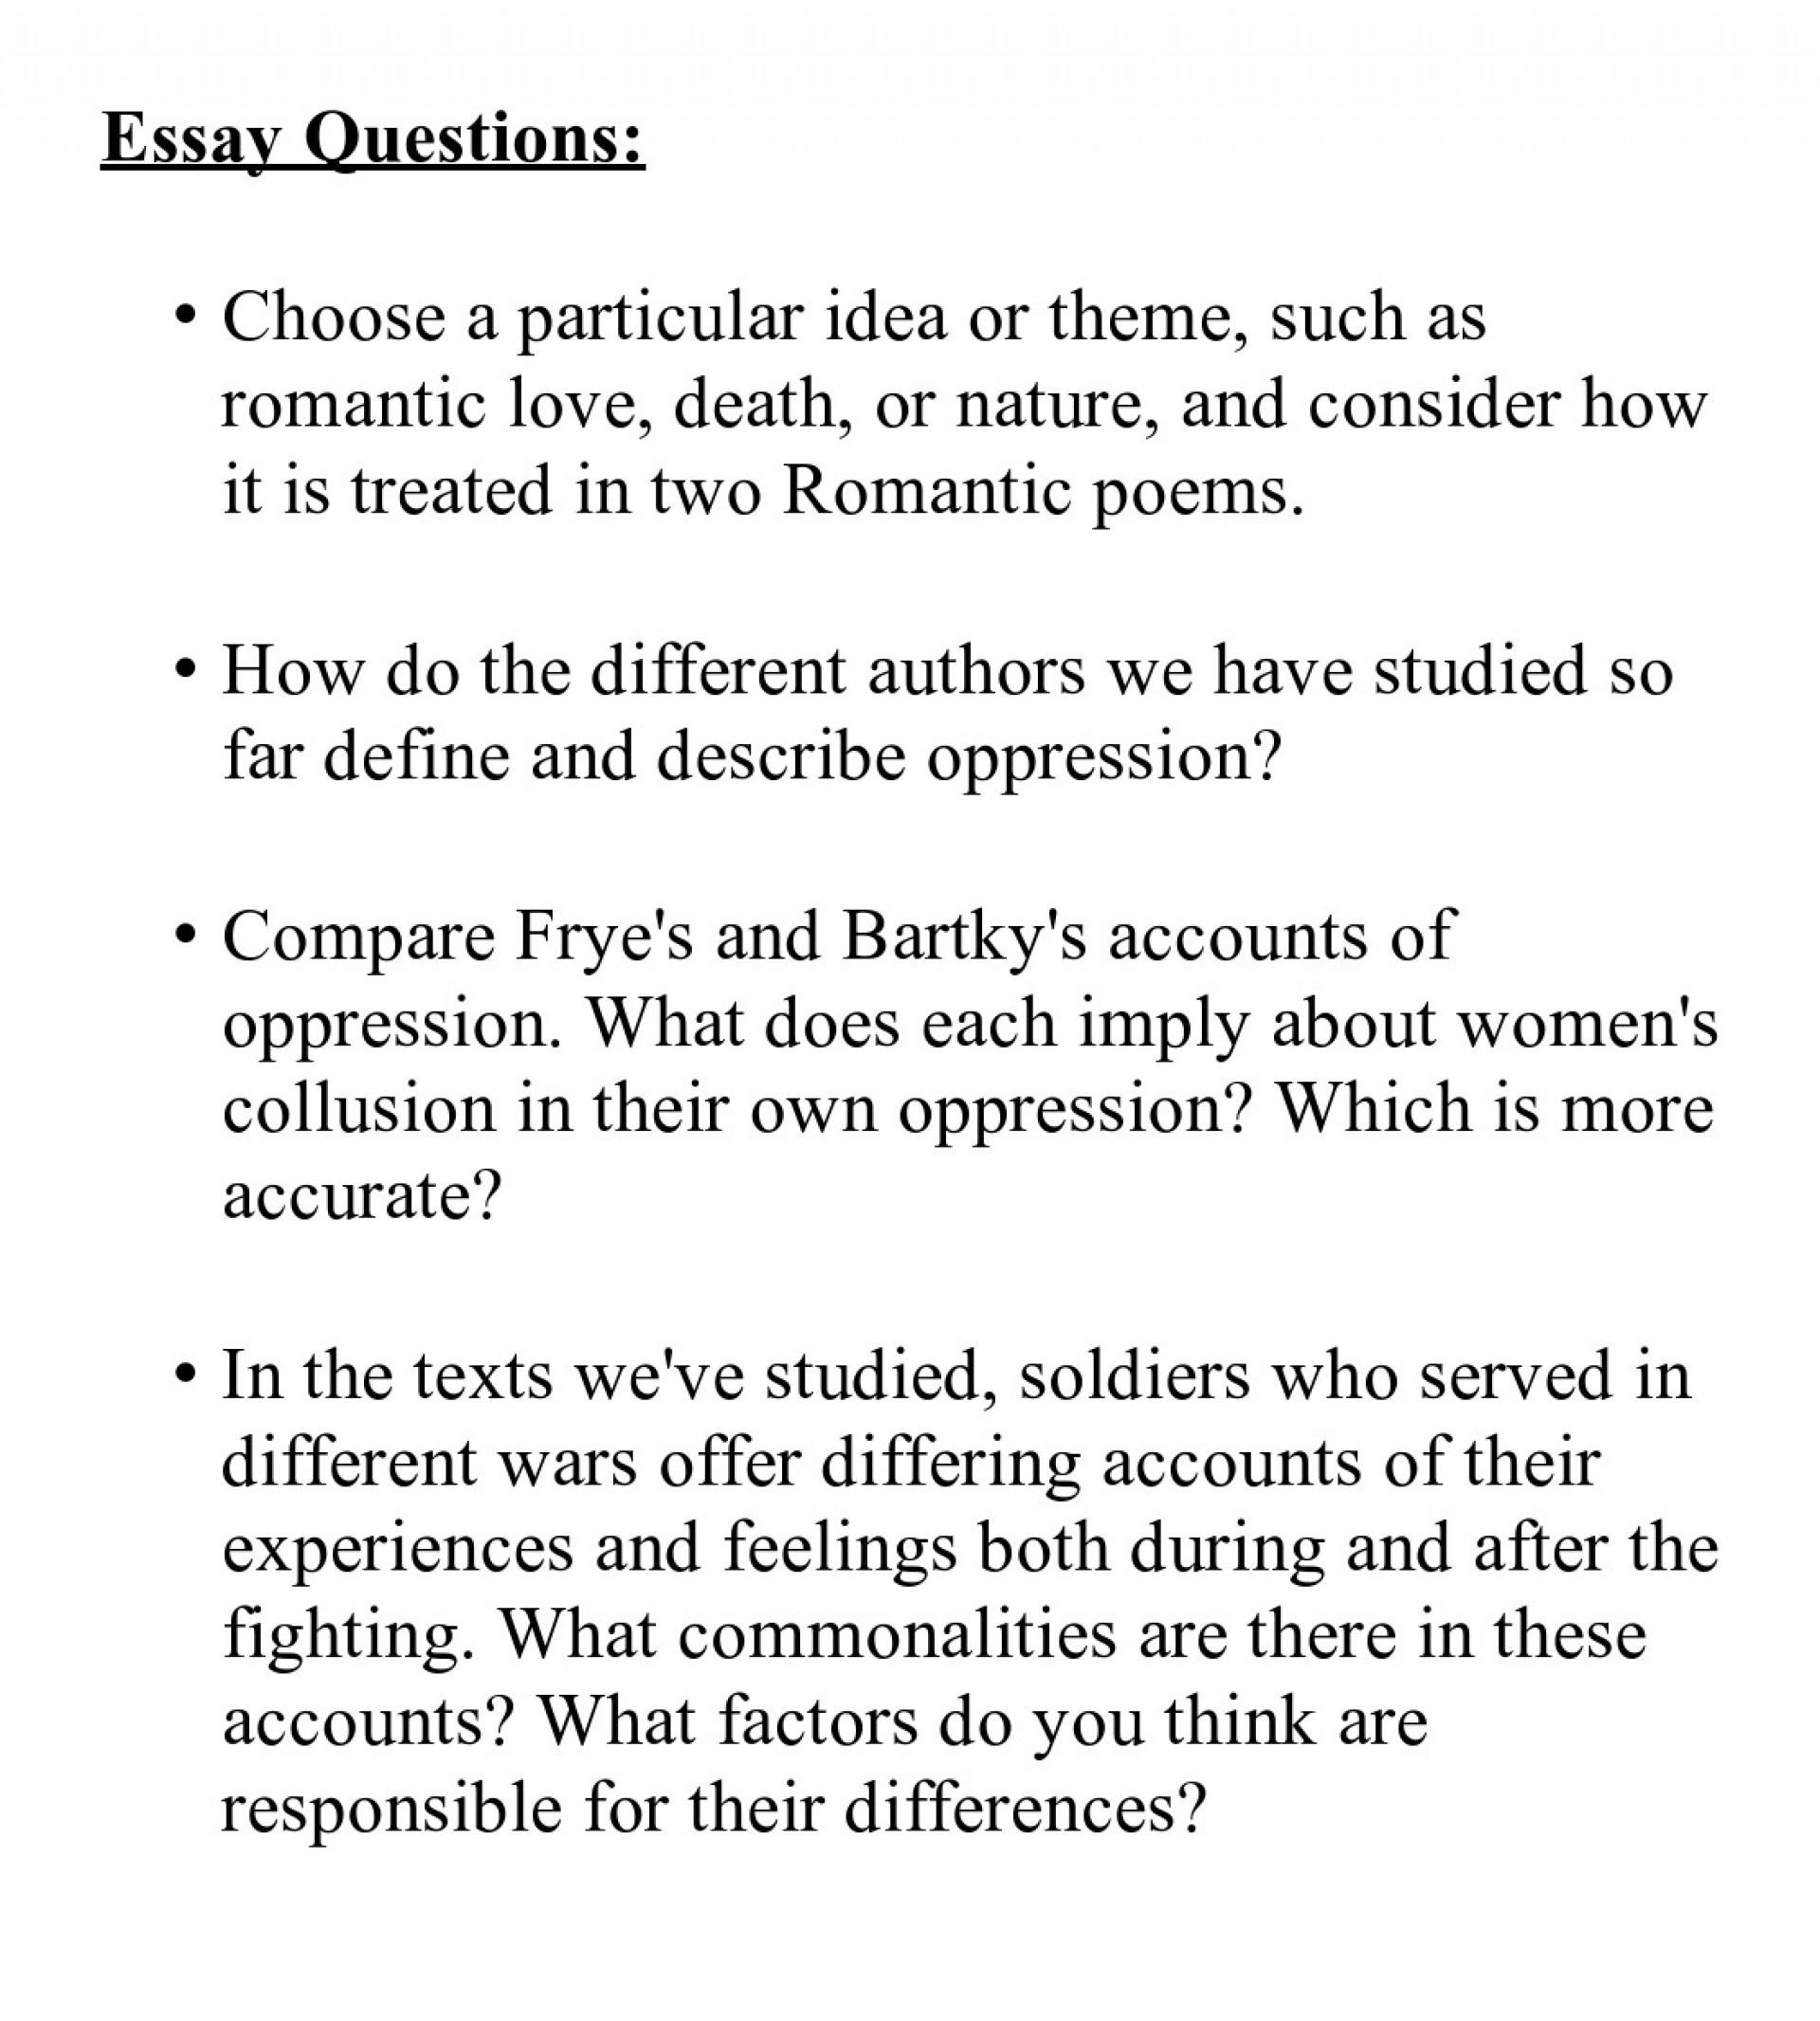 007 Essay Example Prompts Questions Best Writing For Middle School Science The Crucible Macbeth 1920